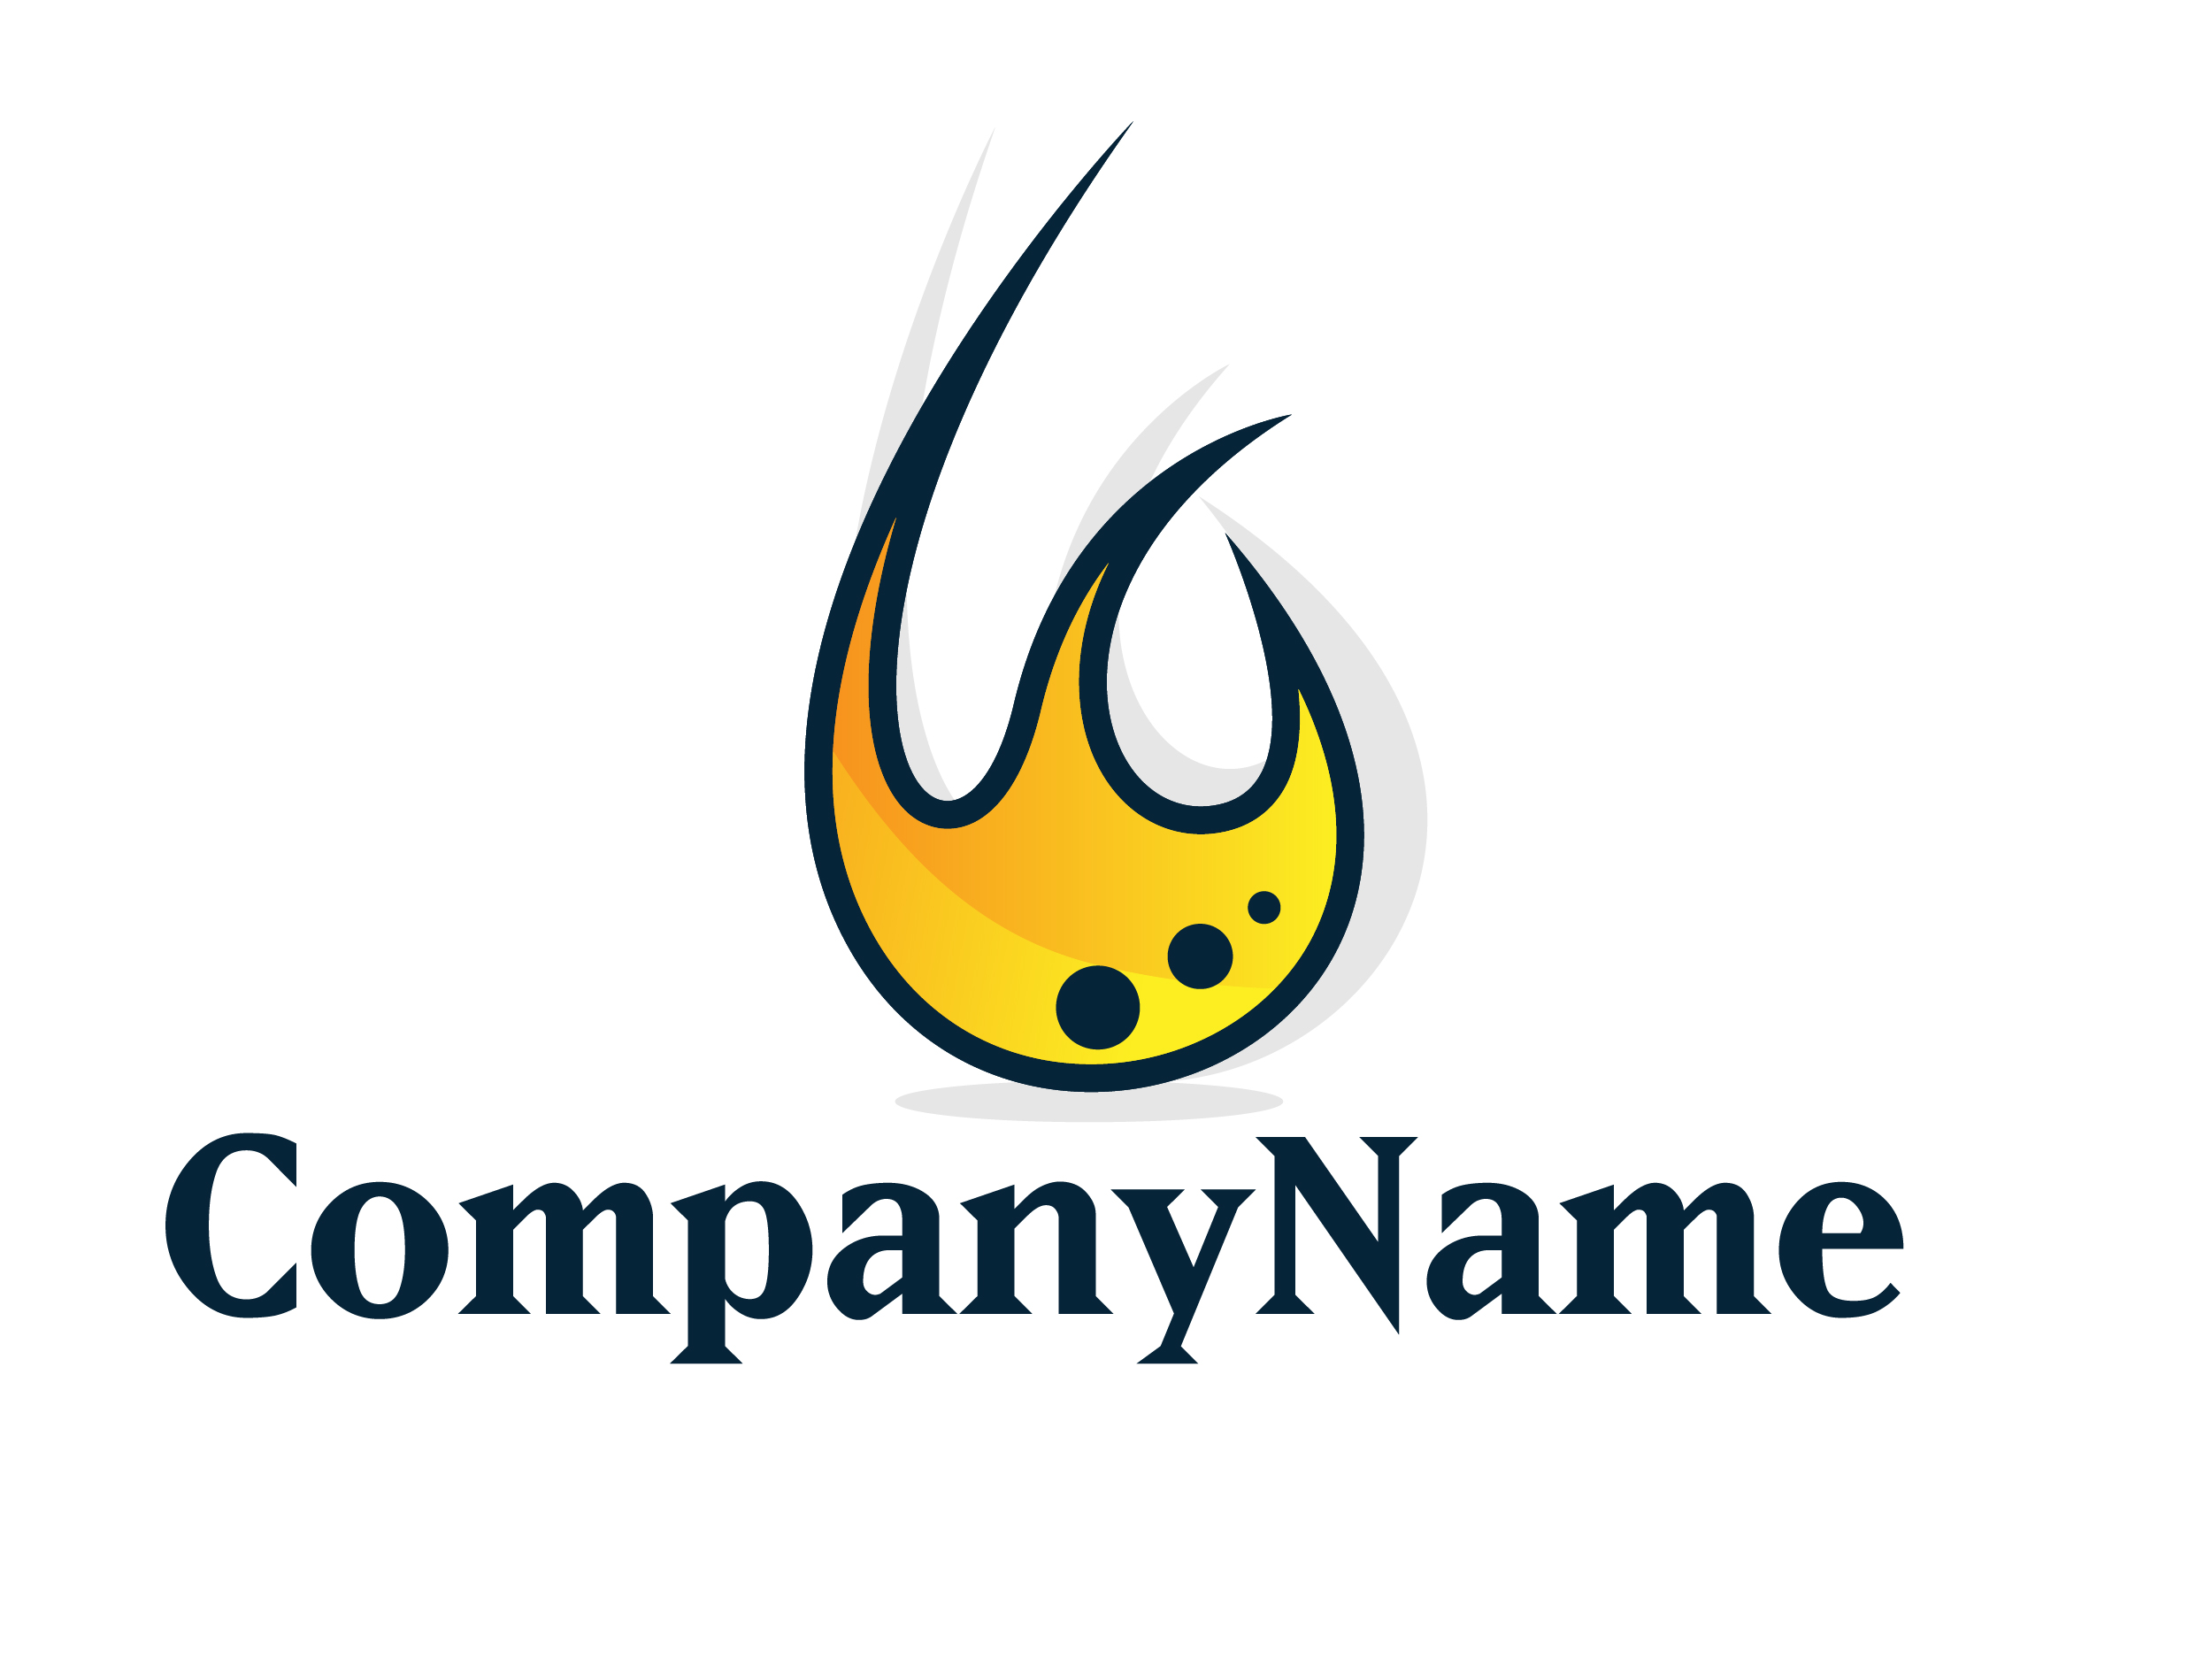 On Flame logo